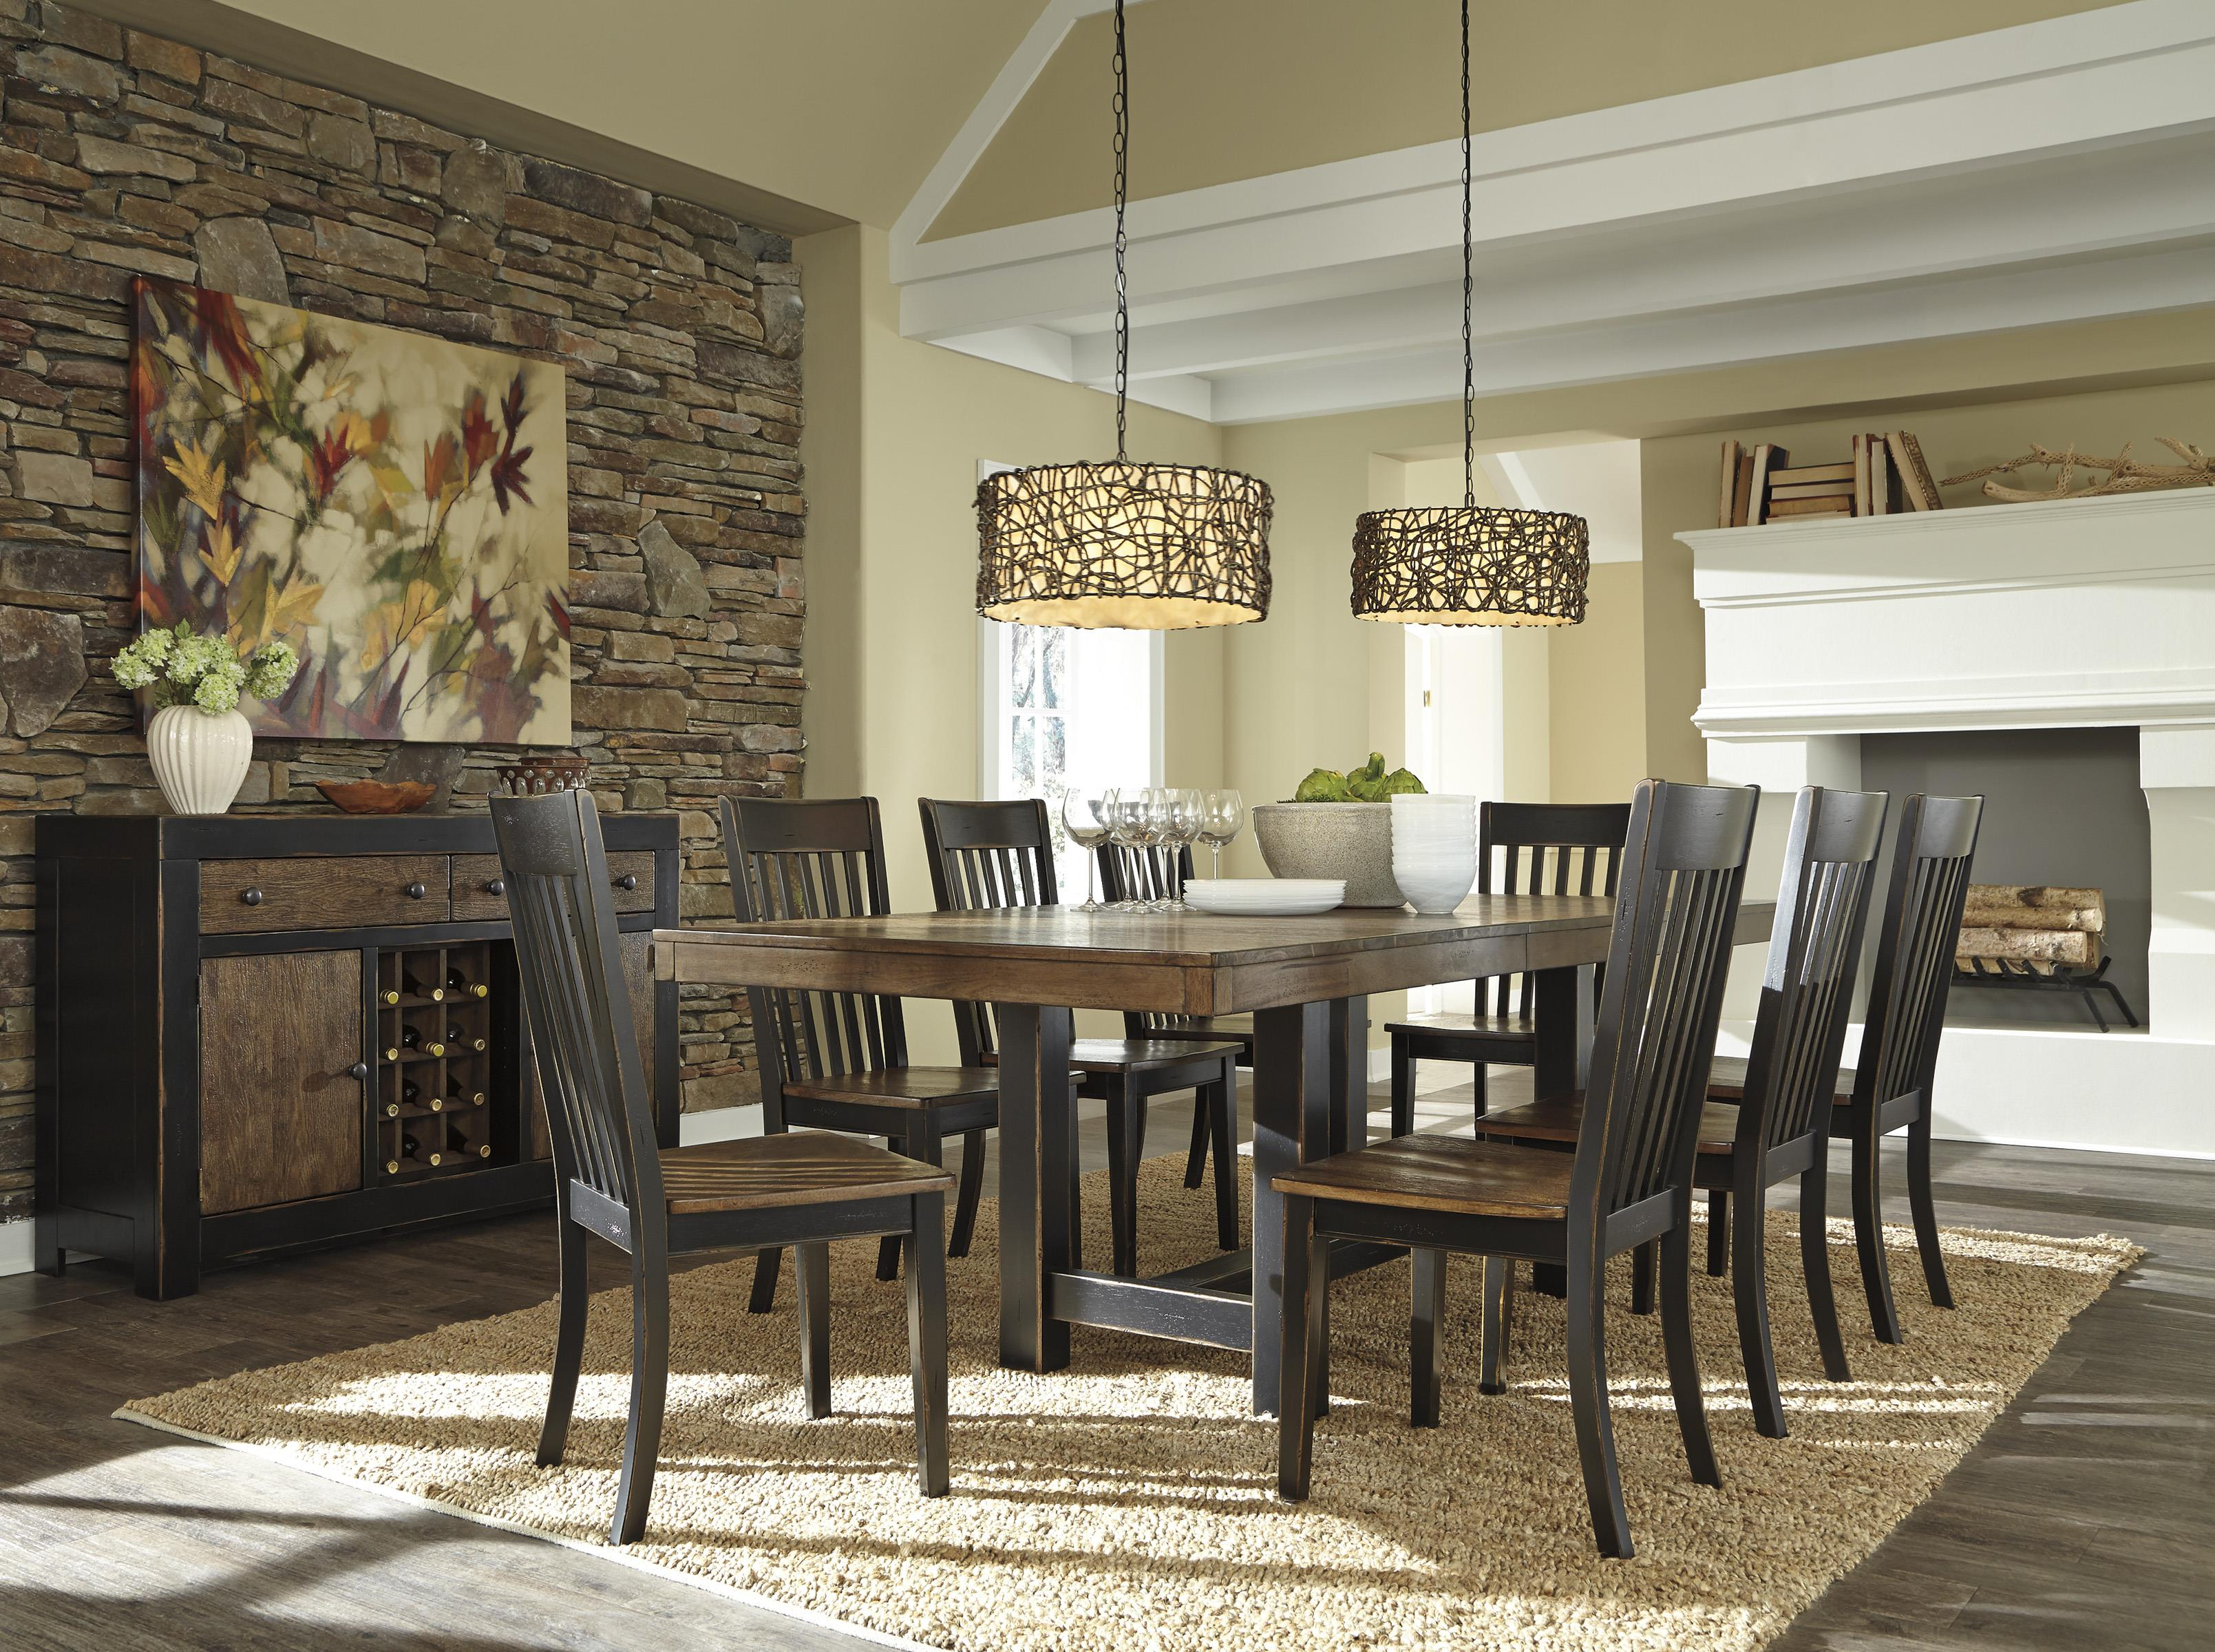 Signature Design by Ashley Emerfield Casual Dining Room Group - Item Number: D563 Dining Room Group 2